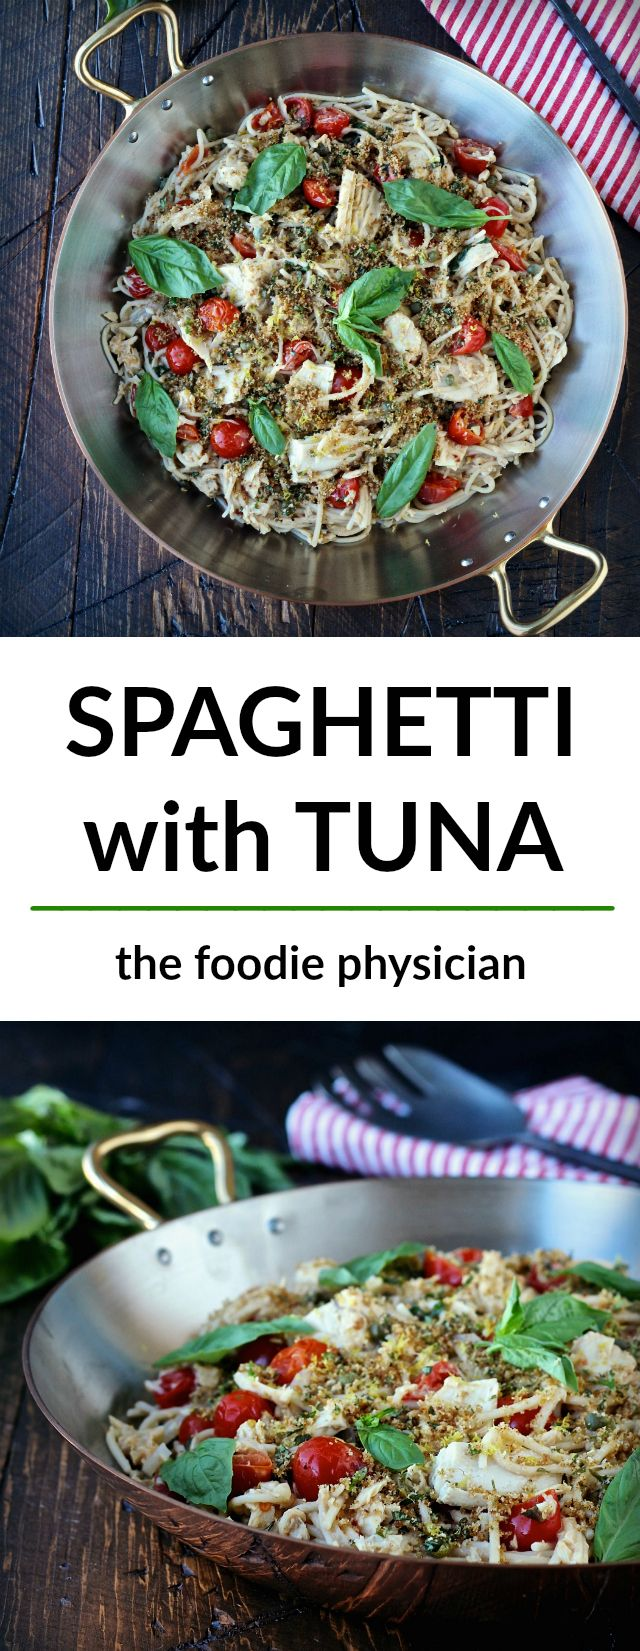 No more boring tuna dishes! My Spaghetti with Tuna is an elegant dish that will make you look at albacore in a whole new way. | thefoodiephysician.com @foodiephysician